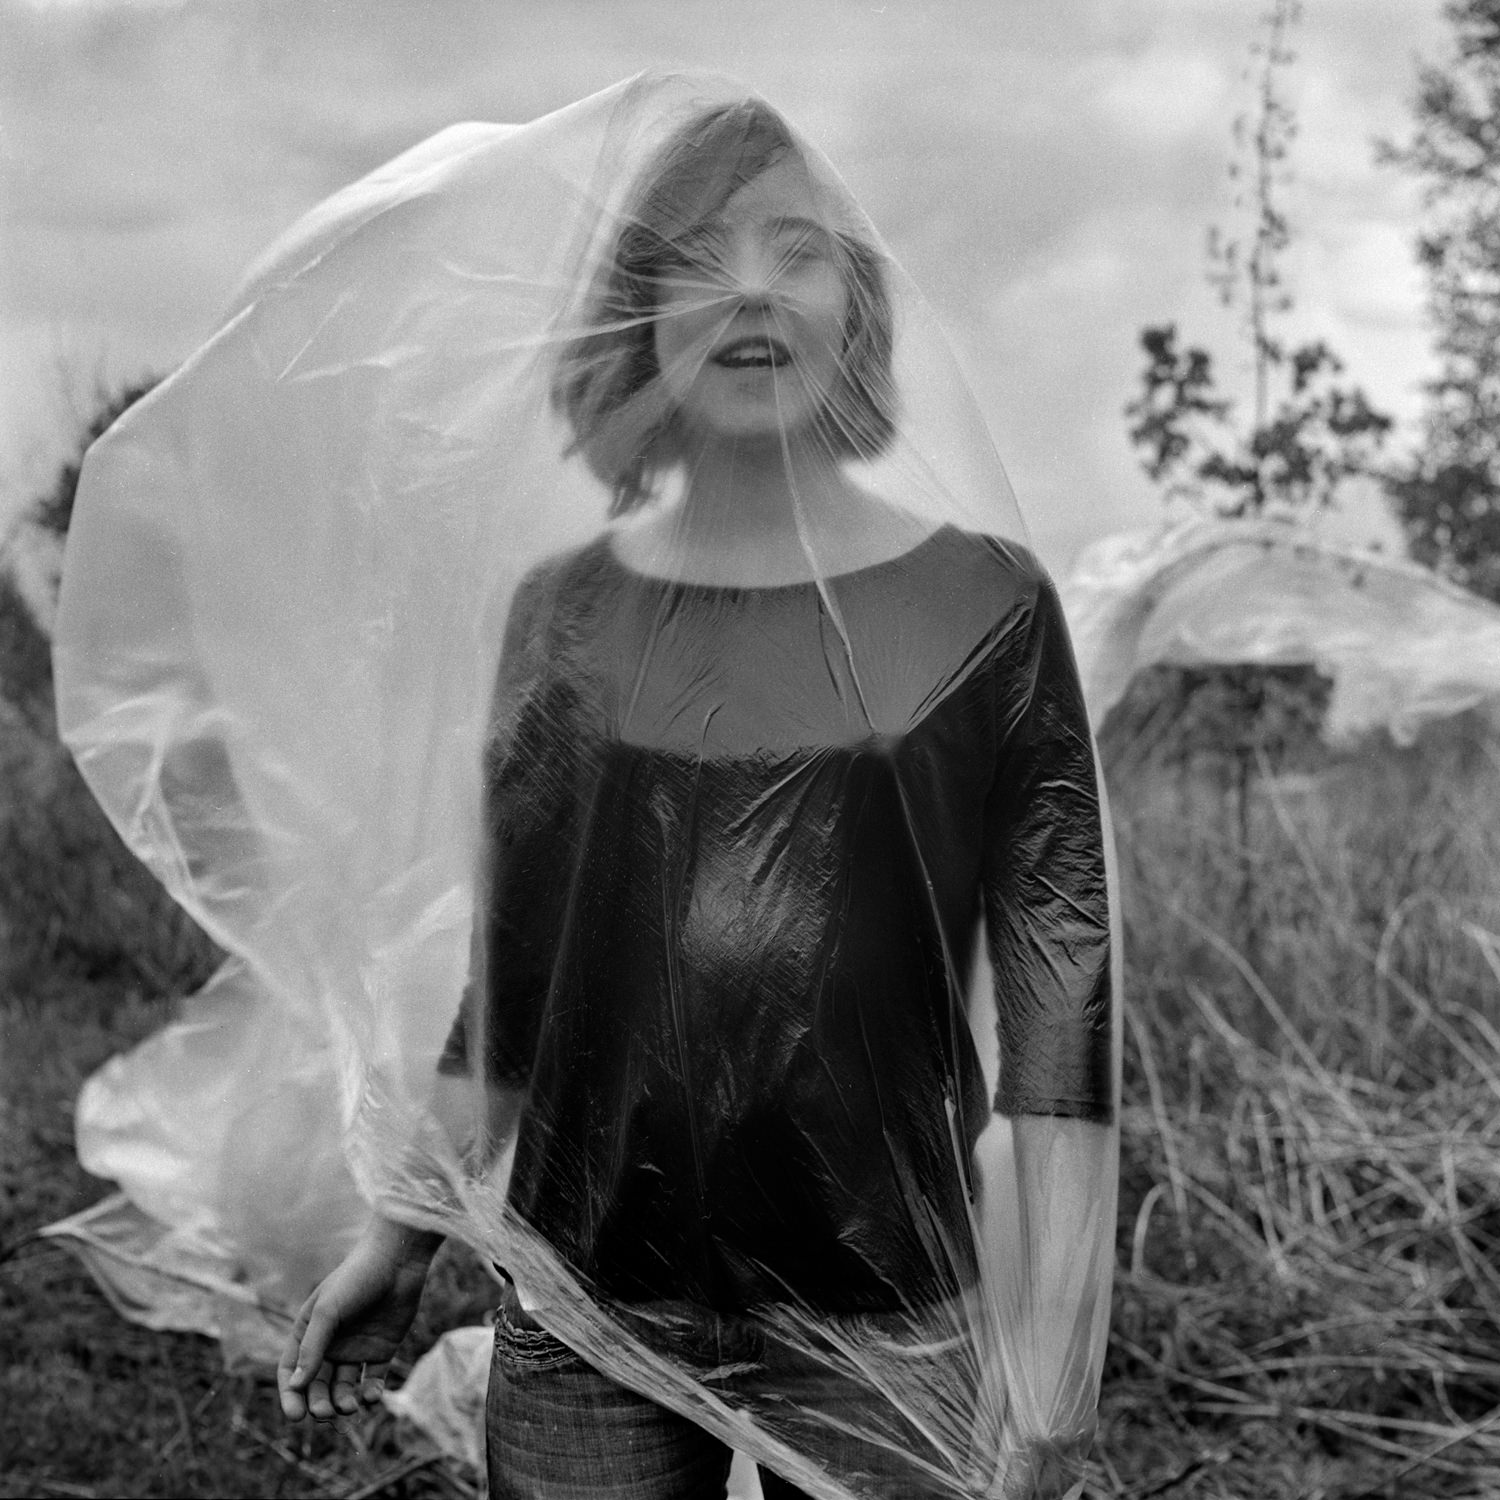 Emotional portrait of a laughing girl in the garden with a plastic bag flying out into the wind, covering the whole body